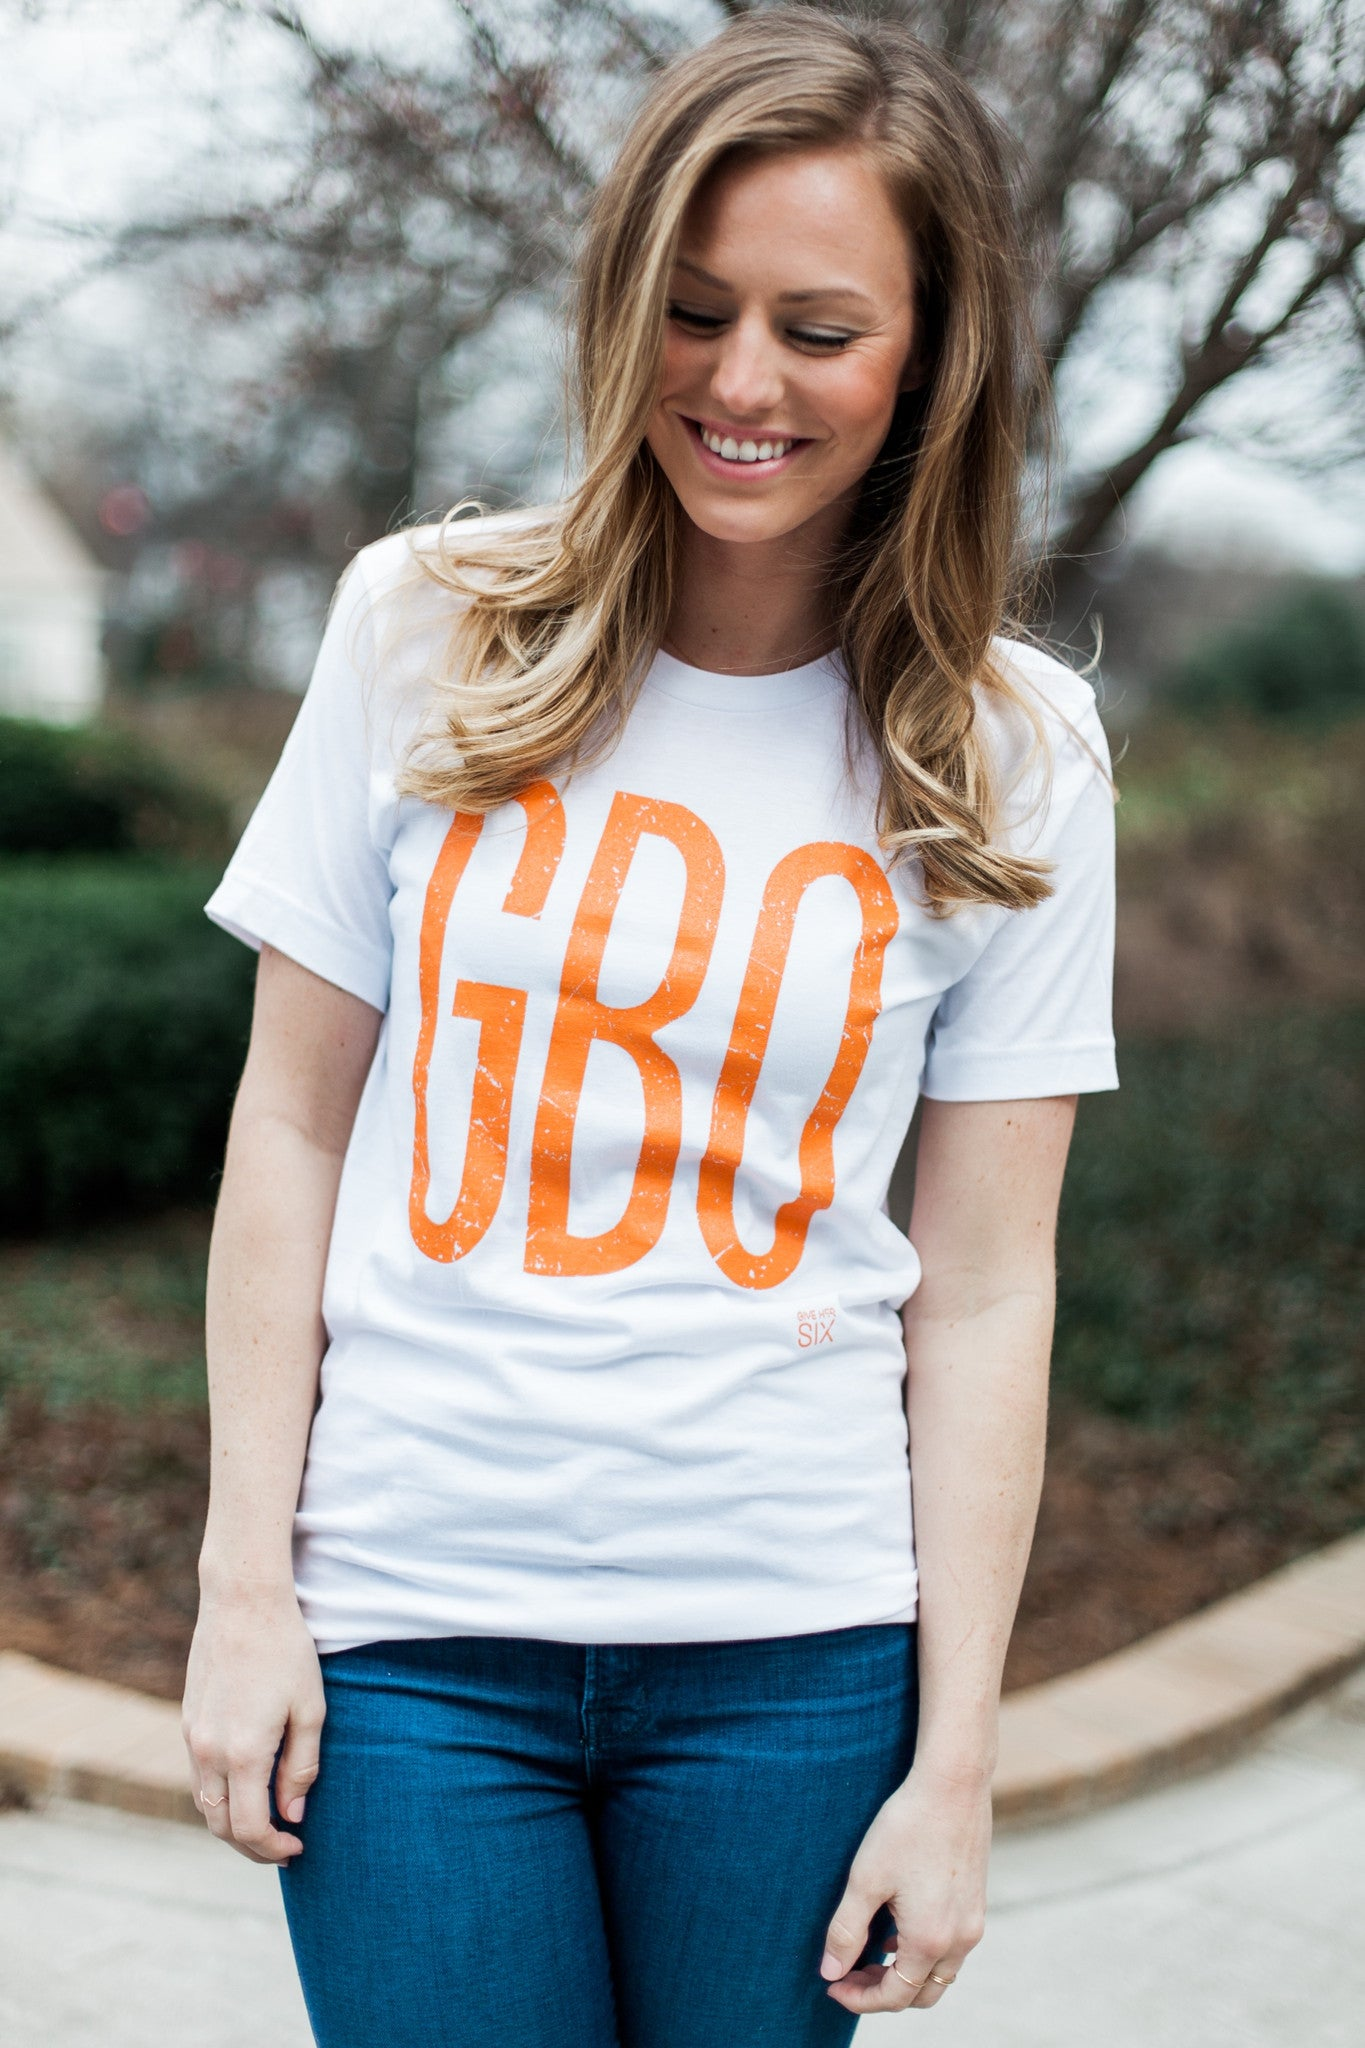 GBO White Short Sleeve T-shirt